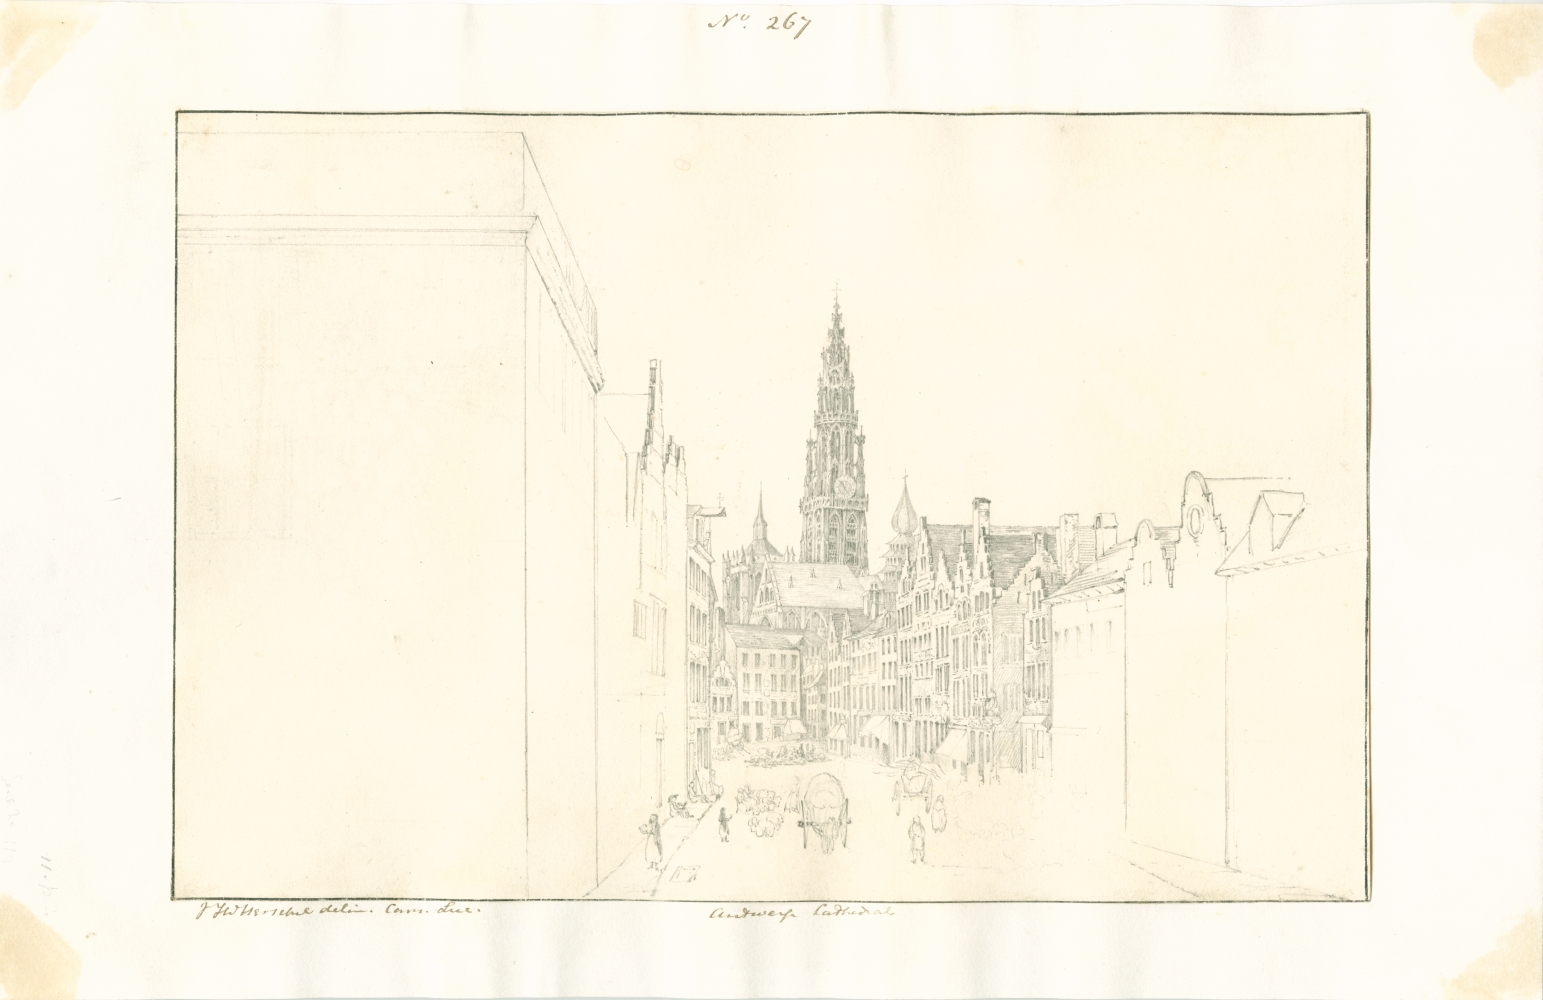 """Sir John Frederick William HERSCHEL (English, 1792-1872) """"No 267 Antwerp Cathedral"""", 16 October 1824 Camera lucida drawing, pencil on paper 19.4 x 29.3 cm mounted on 24.5 x 38.0 cm paper Numbered, signed and titled """"No 267 / JFW Herschel delin Cam. Luc. / Antwerp Cathedral"""" in ink in border"""